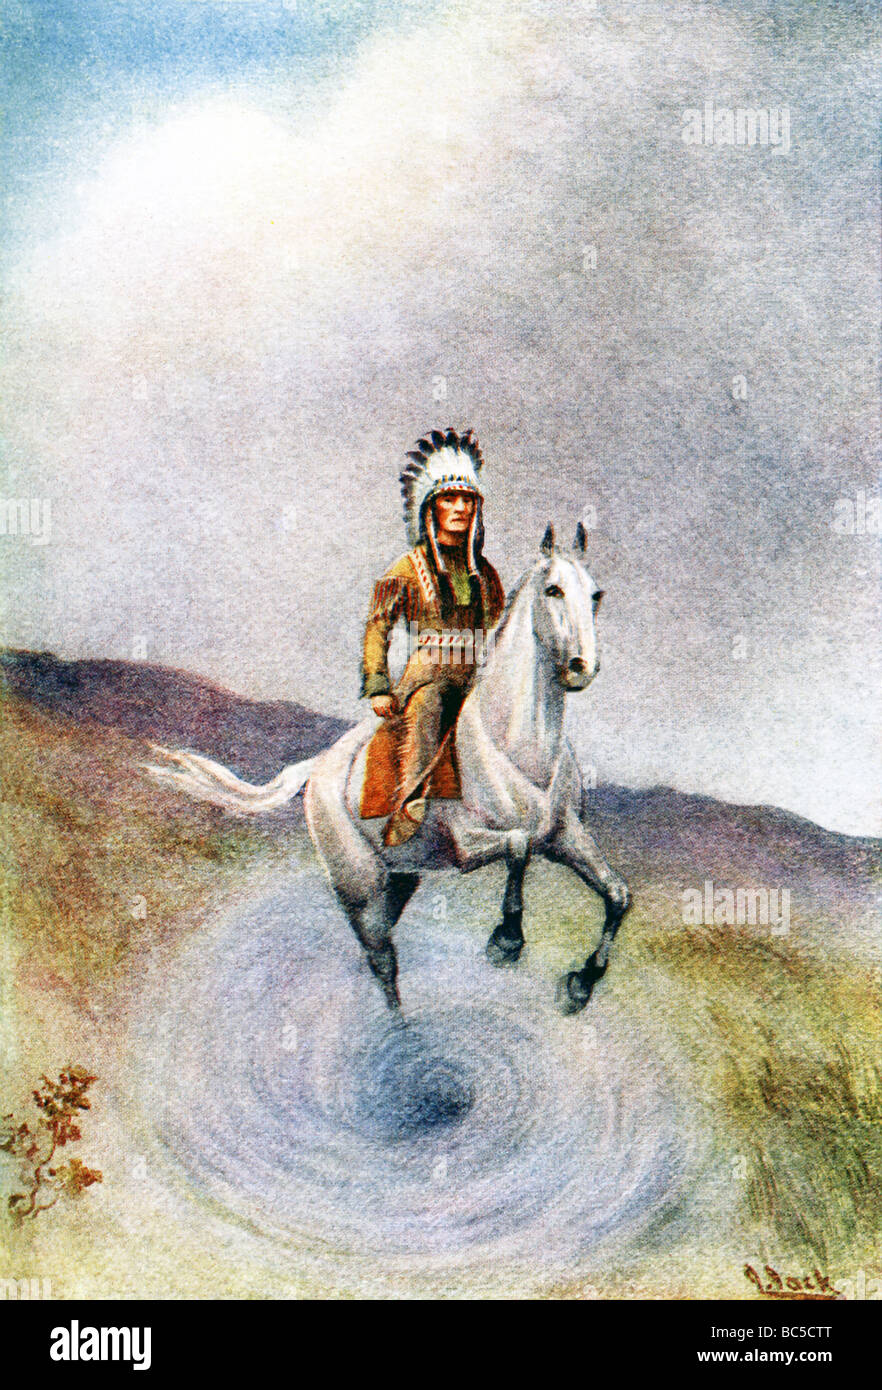 Native American myth of suitor who rescues chief's son by jumoing into a pit, and then emerging back into world. - Stock Image